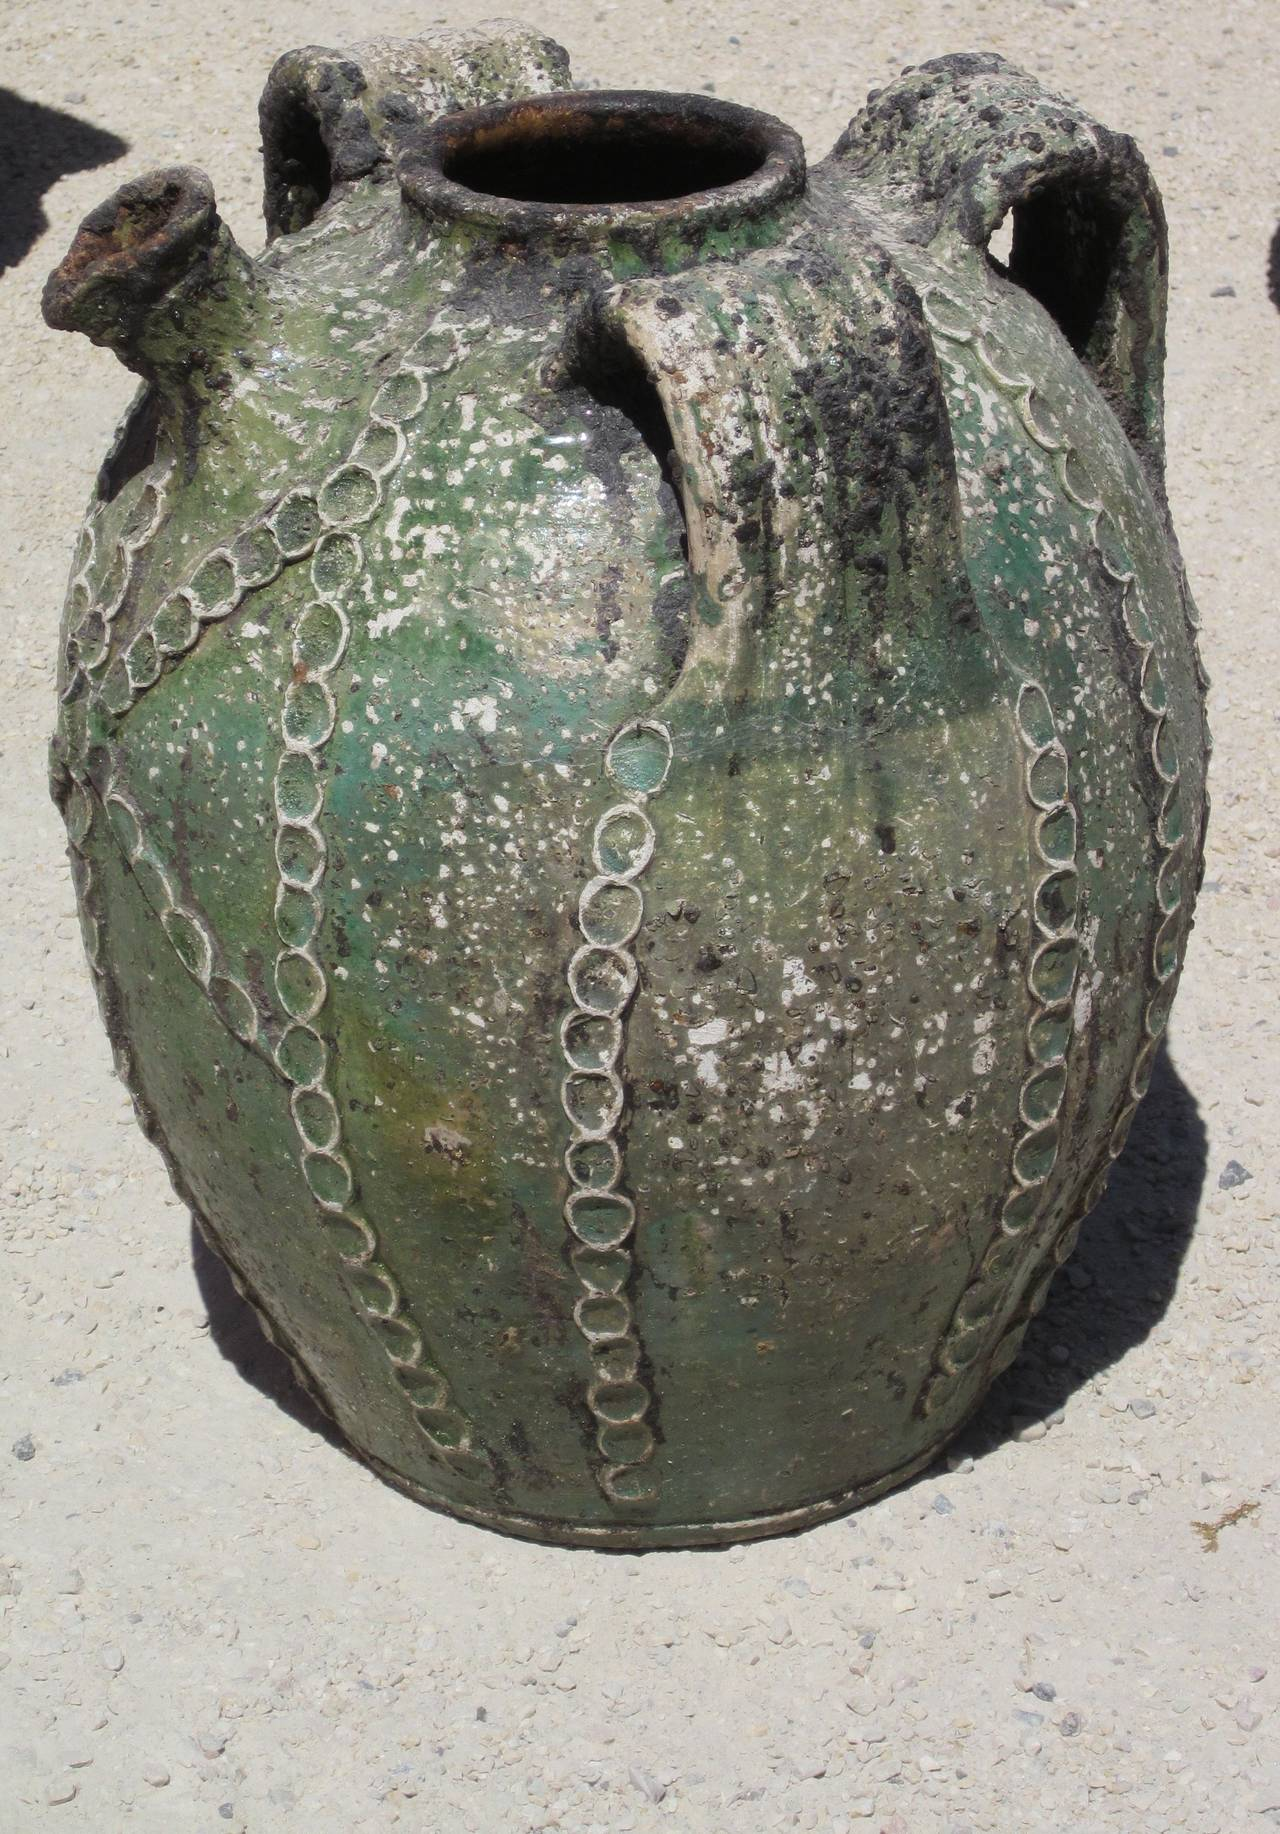 19th Century Textured Green Jug with Handles and Spout, France 2